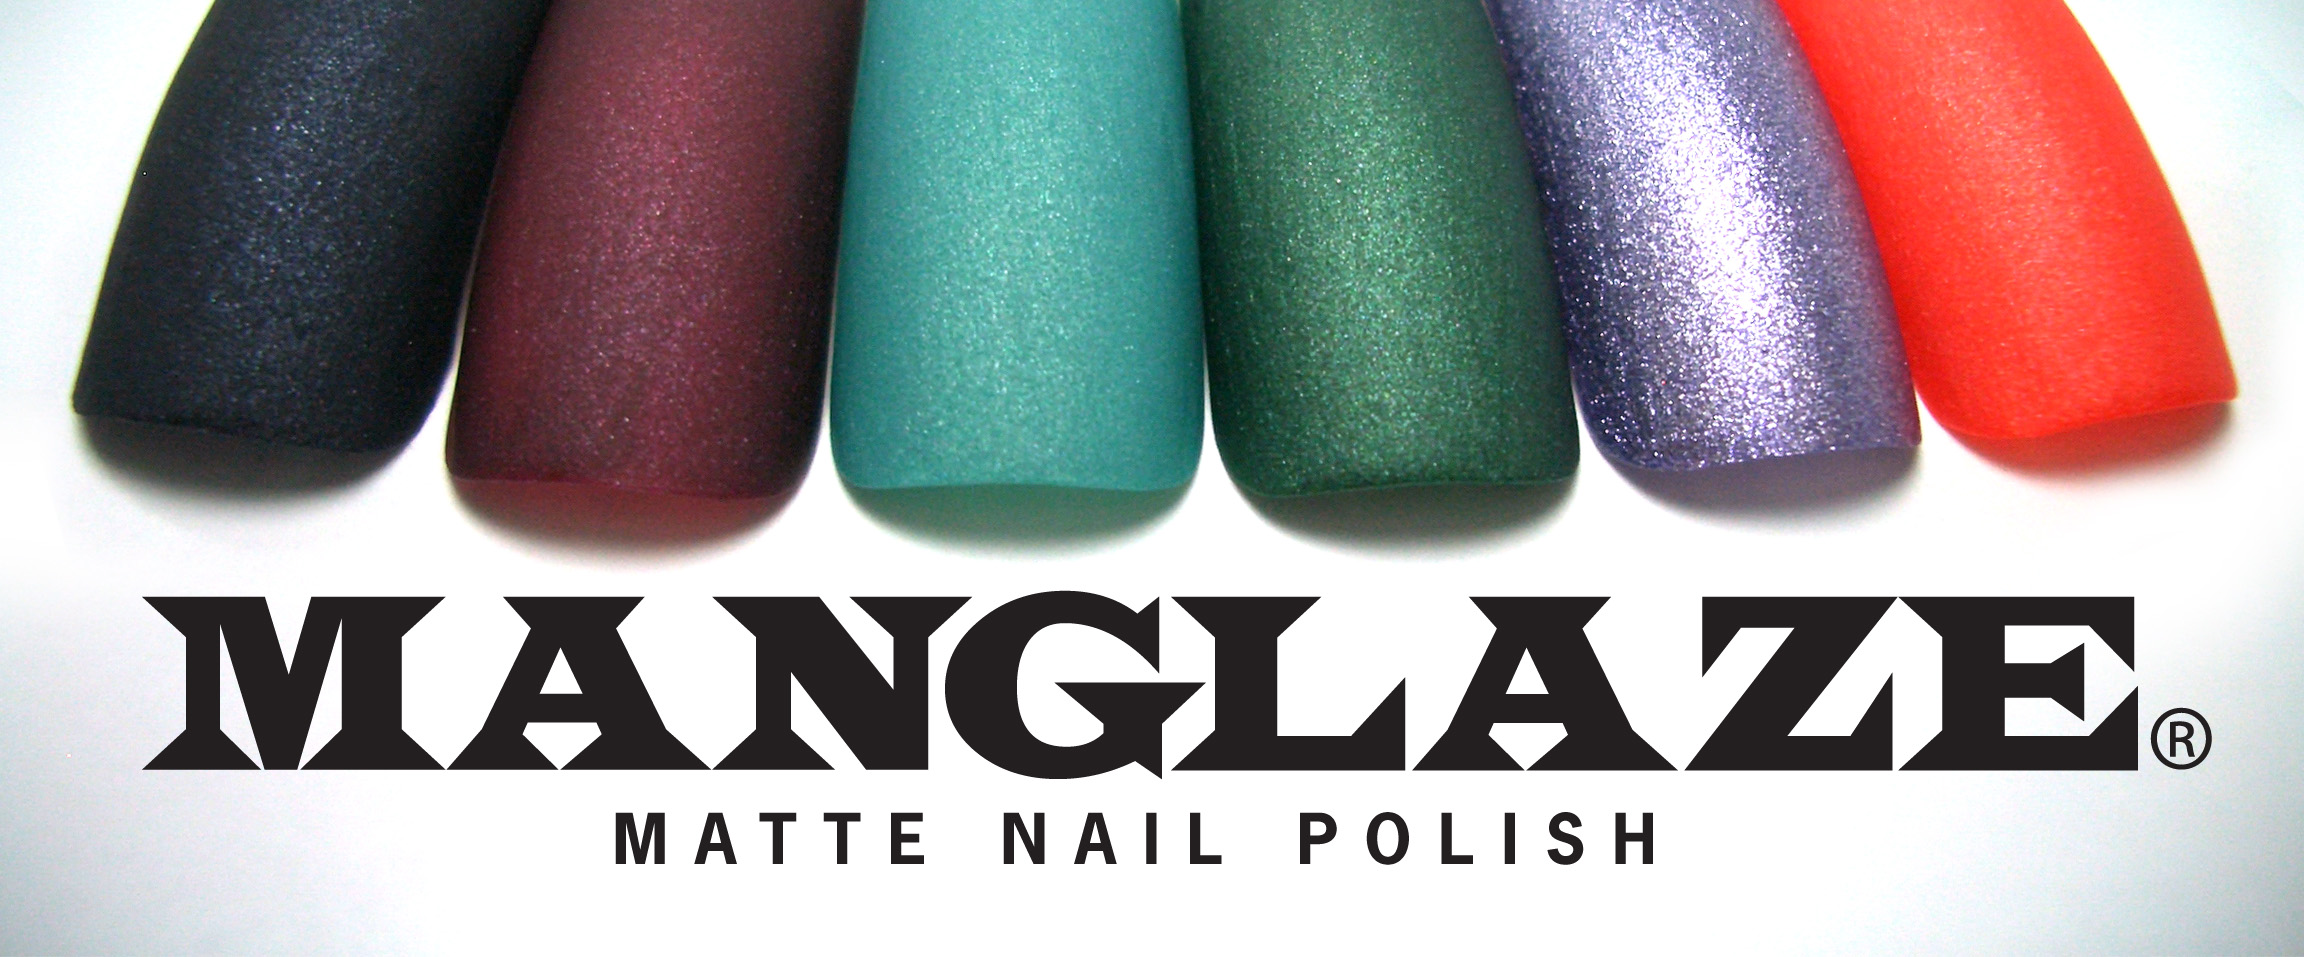 Nailing It: A Color Dare Manglaze polish nail